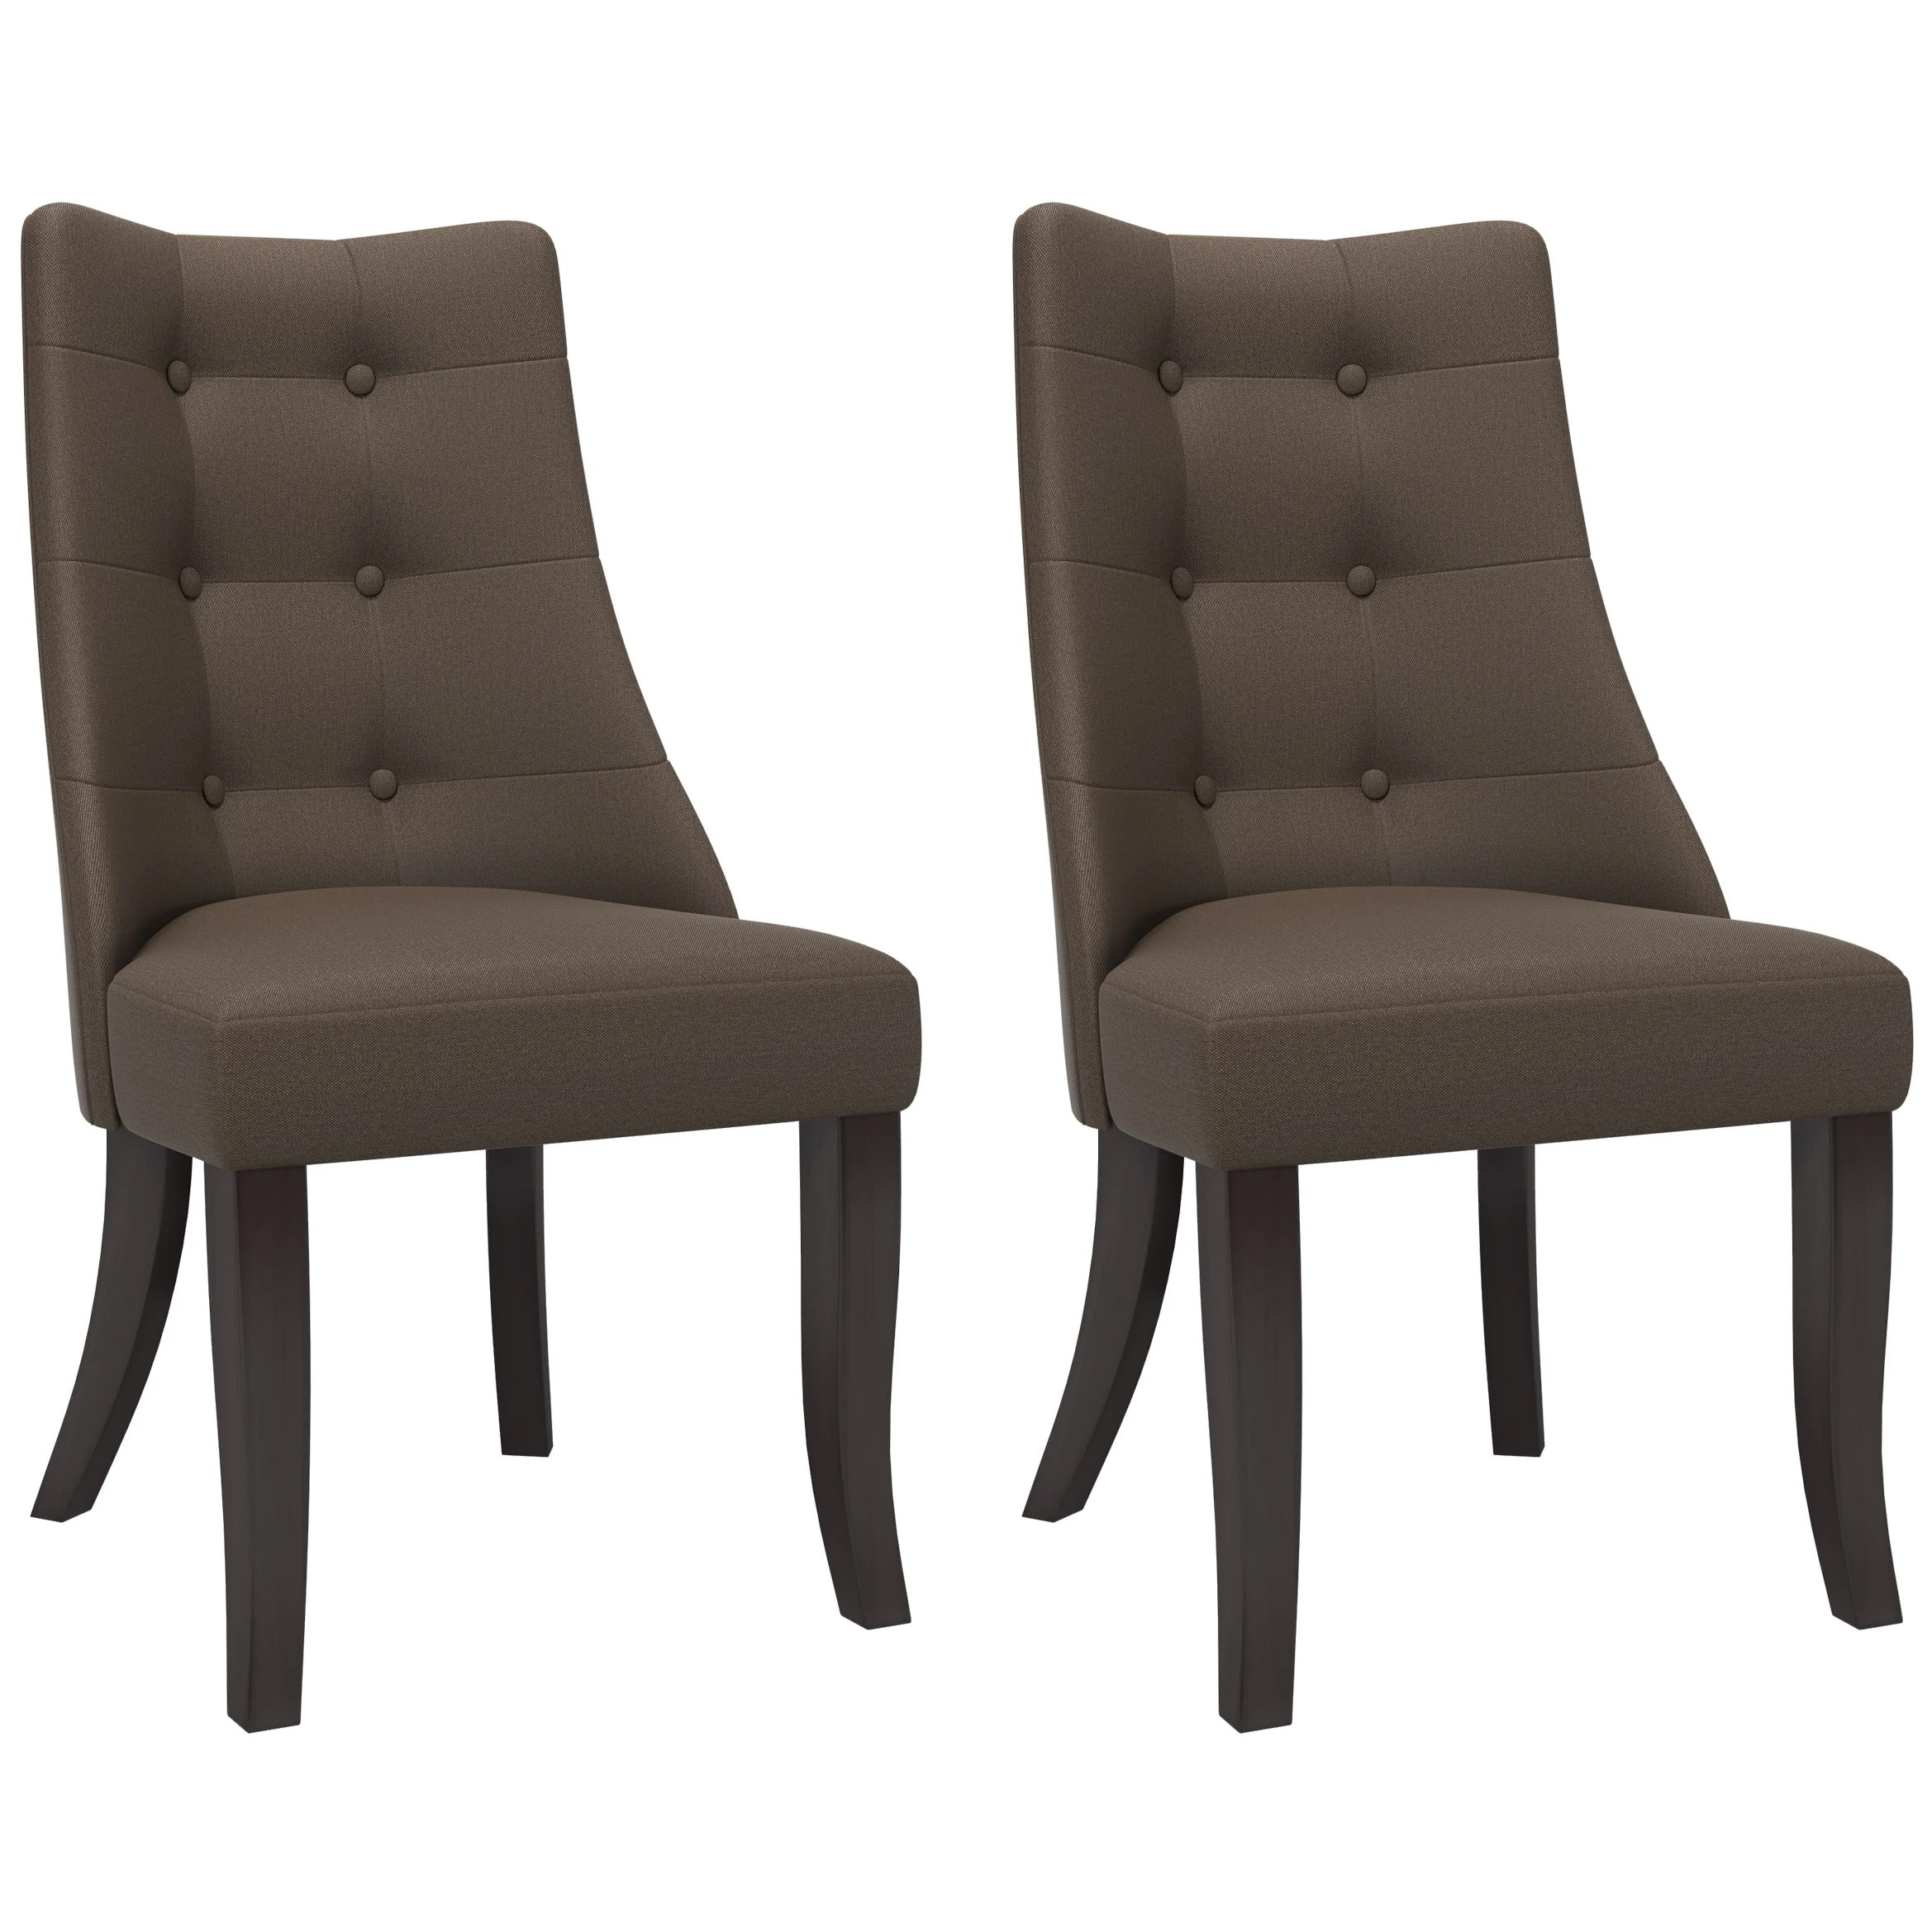 Studio Chairs Brayden Studio Iris Parsons Chair Wayfair Ca